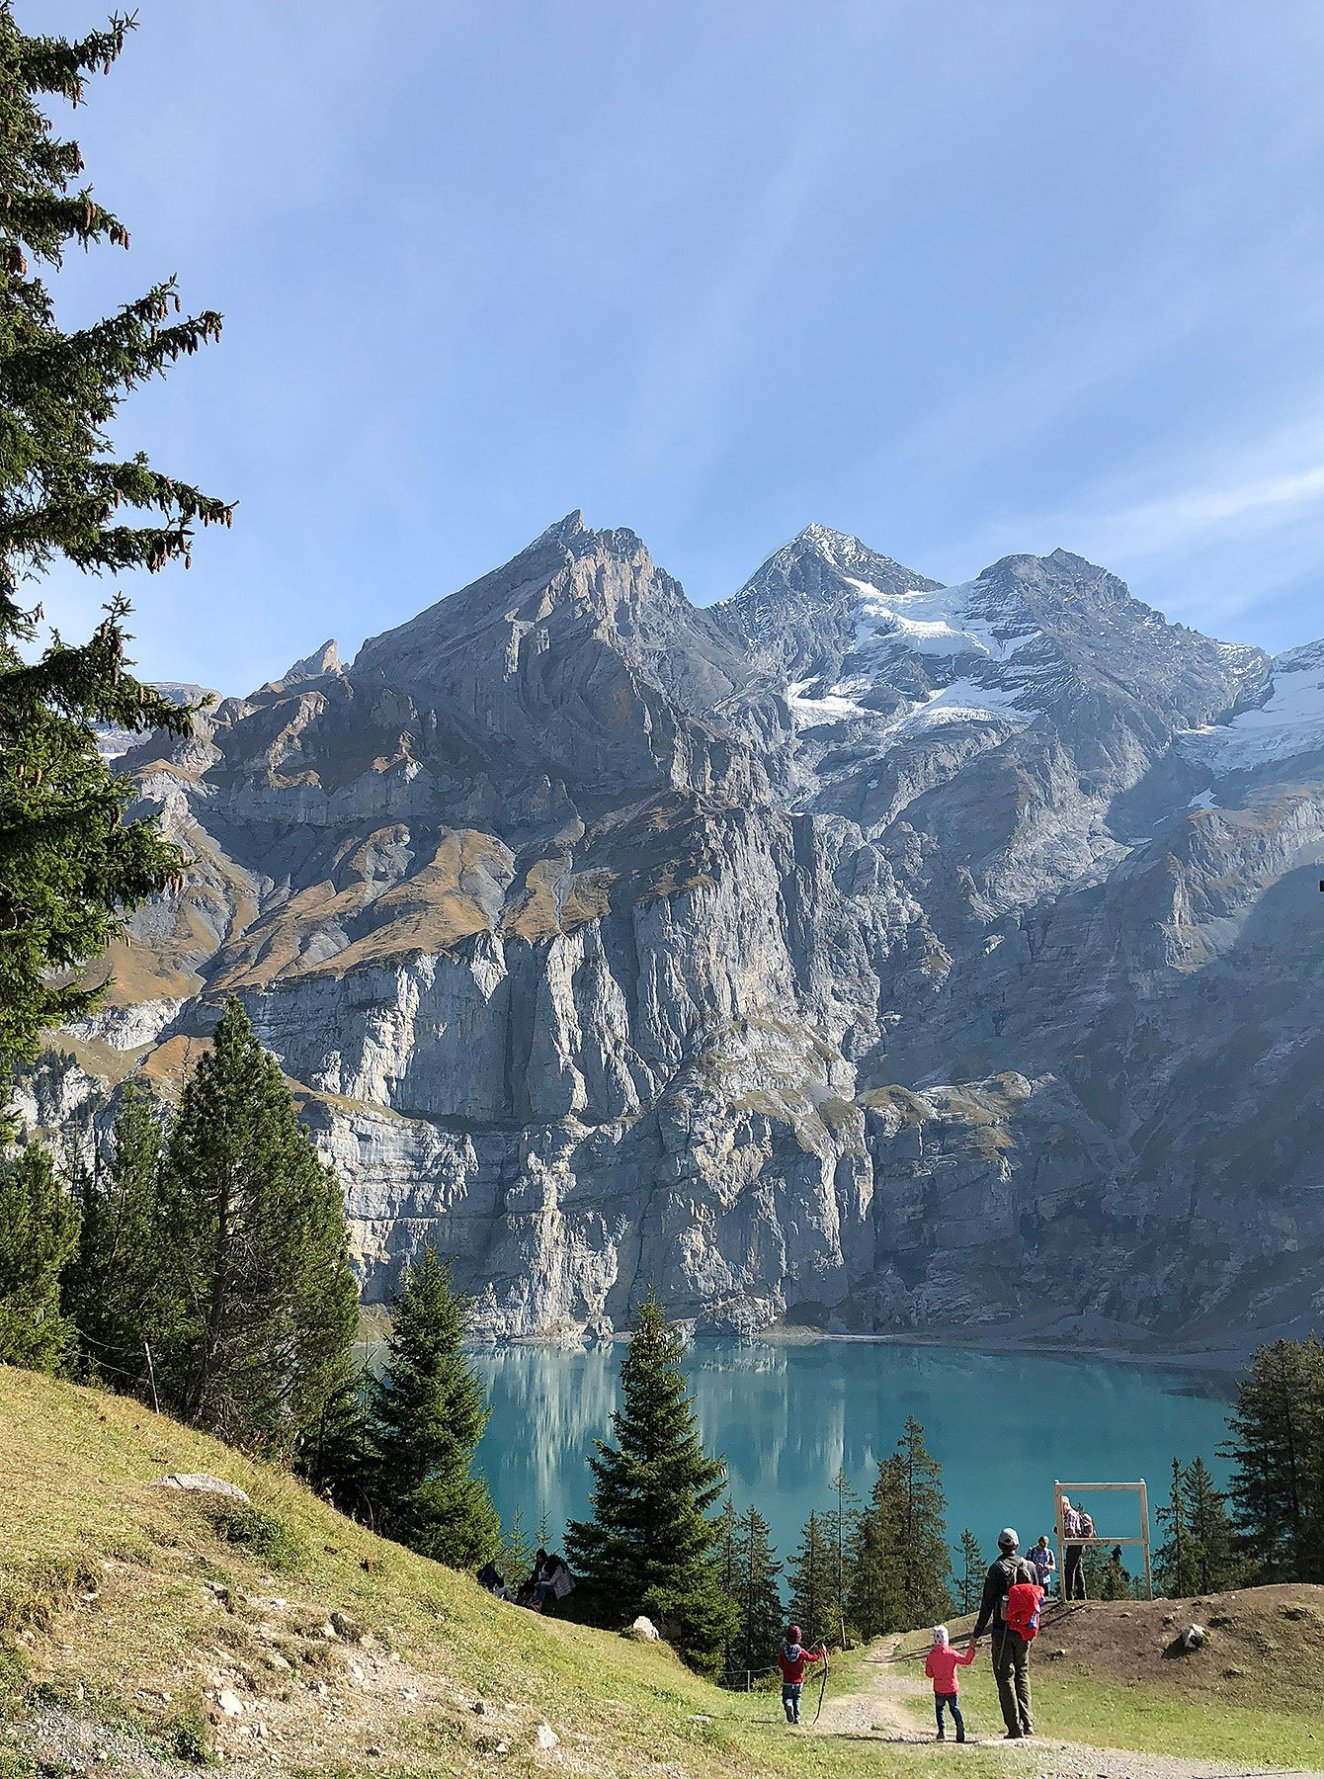 Walking on route via Läger, to the amazing Viewpoint - Oeschinensee - Switzerland